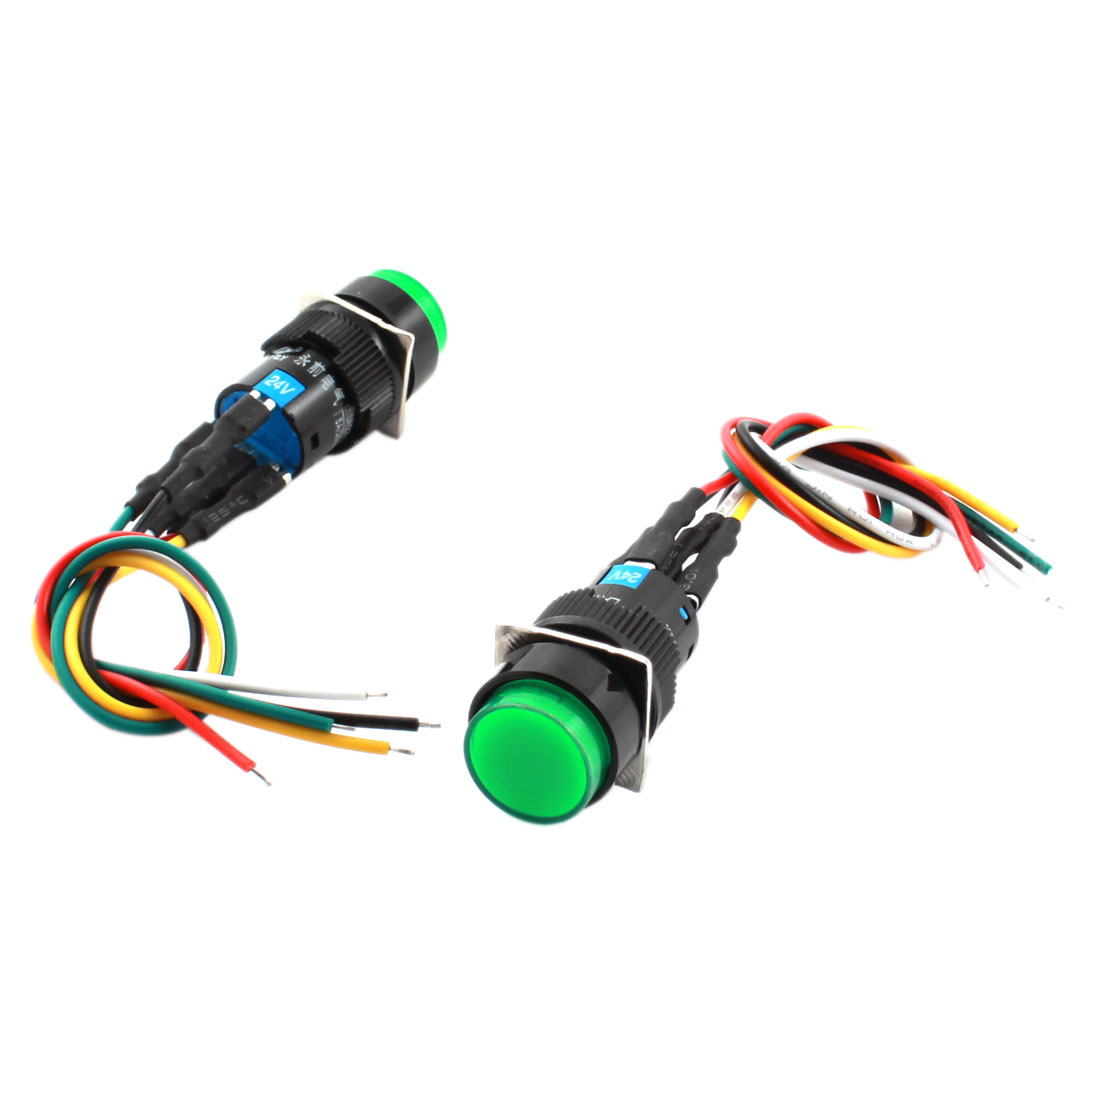 2Pcs DC24V 16mm Thread Panel Mount 5 Wires SPDT 1NO 1NC Locking Green Pilot Lamp Pushbutton Switch